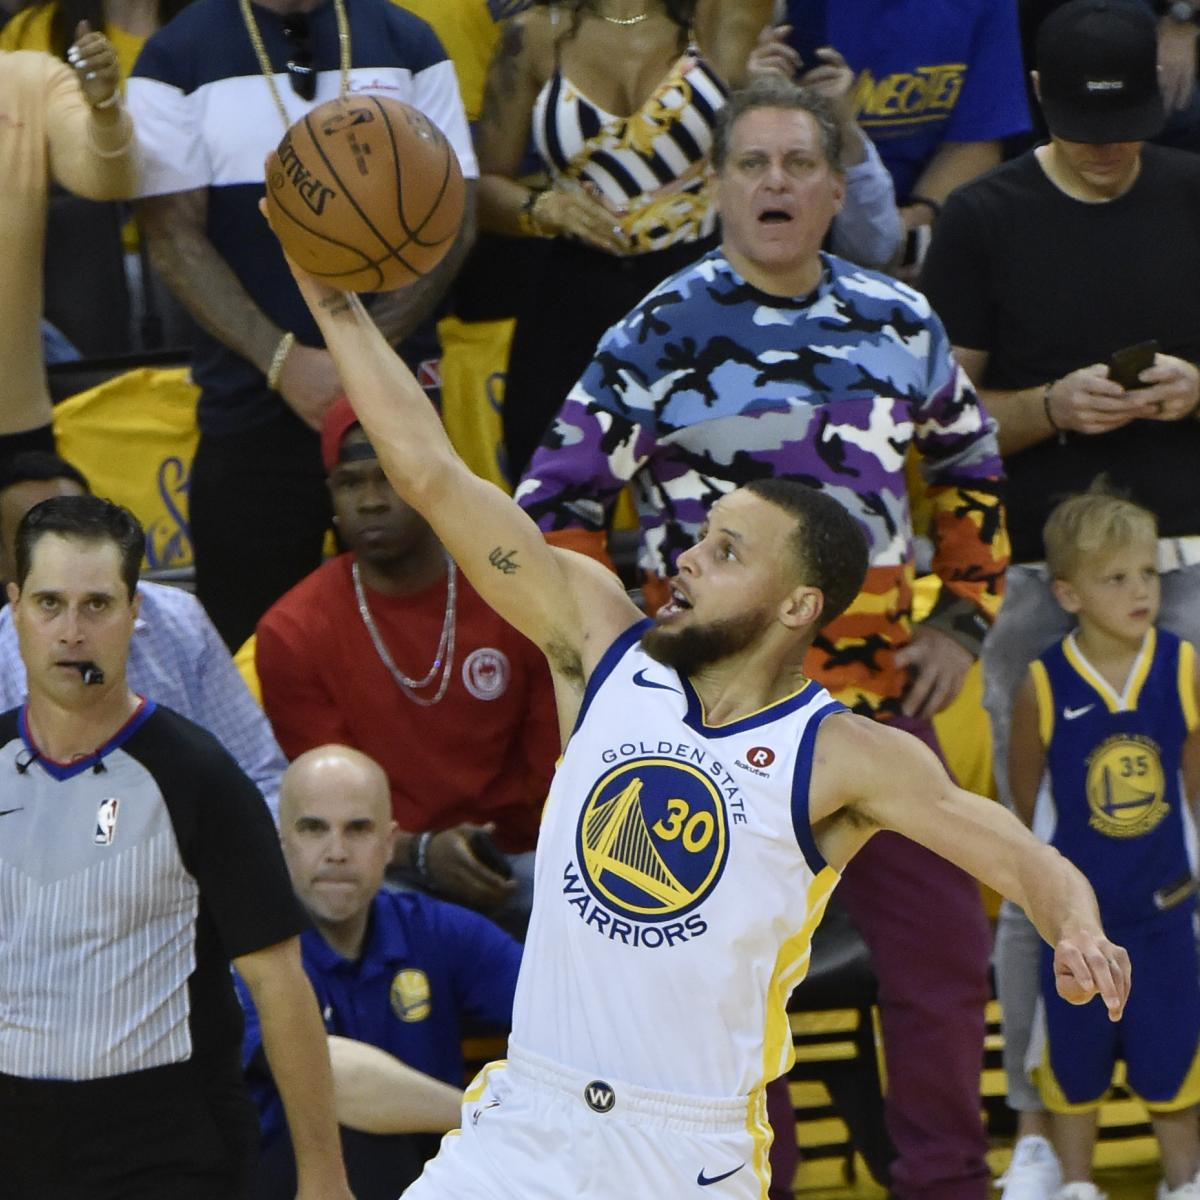 Houston Rockets Vs Golden State Warriors Lineup: NBA Playoffs 2018: TV Schedule, Dates And Odds For